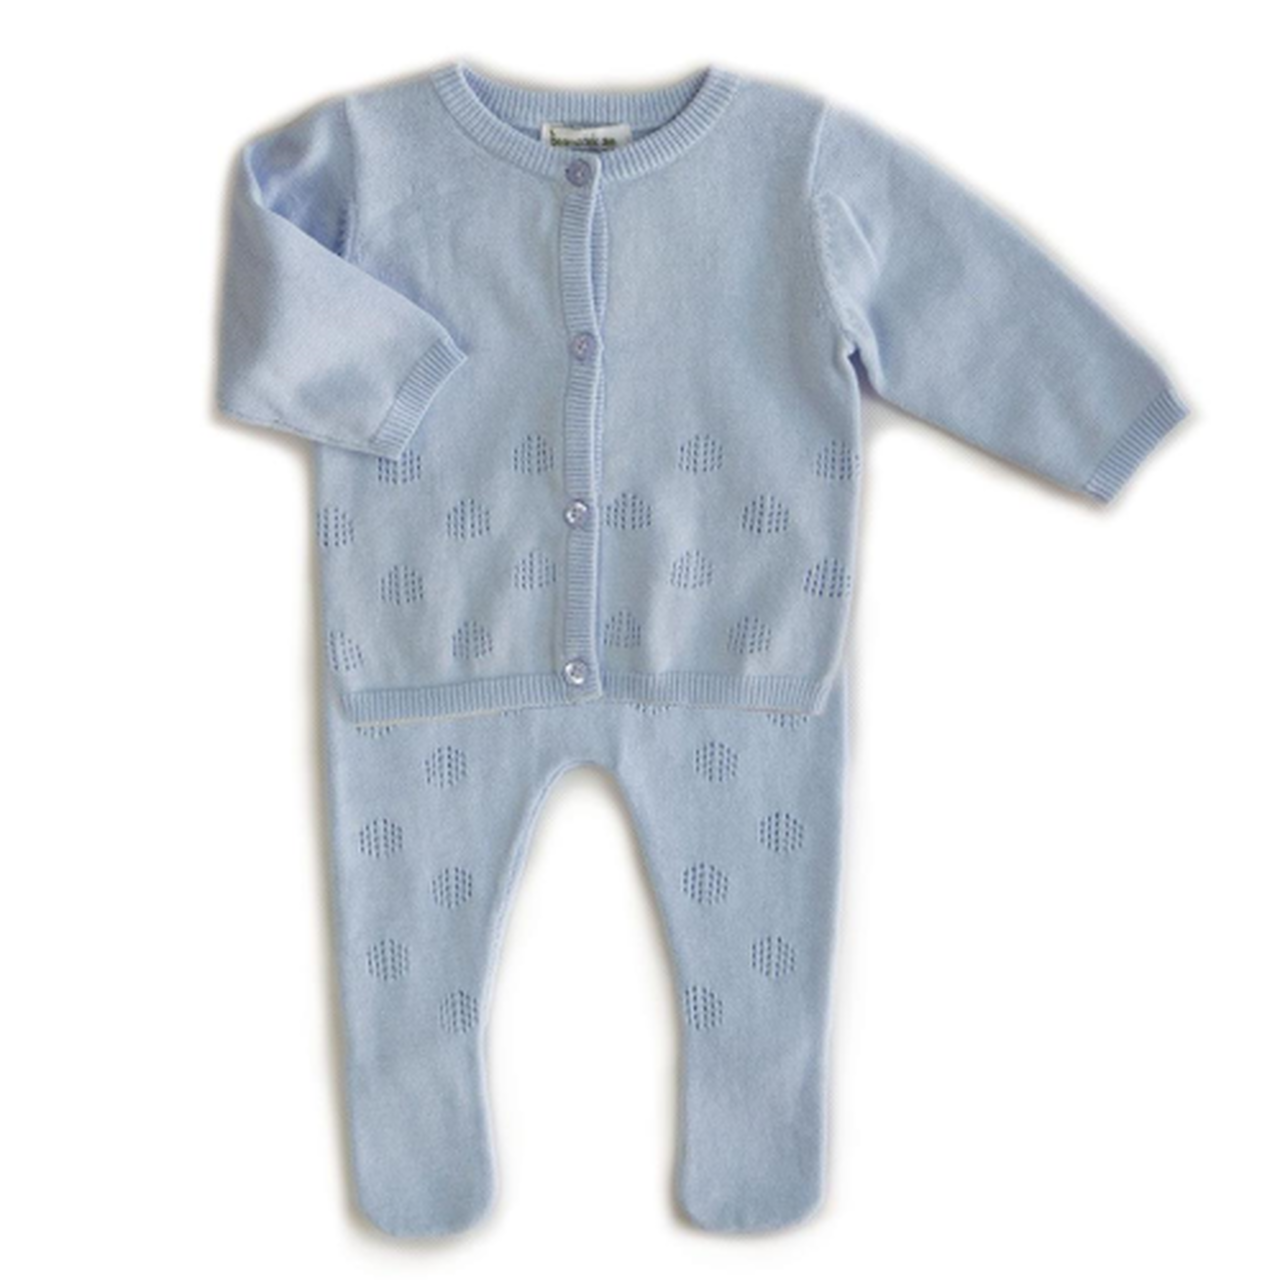 BEANSTORK - Leaf 2 Piece Set Blue